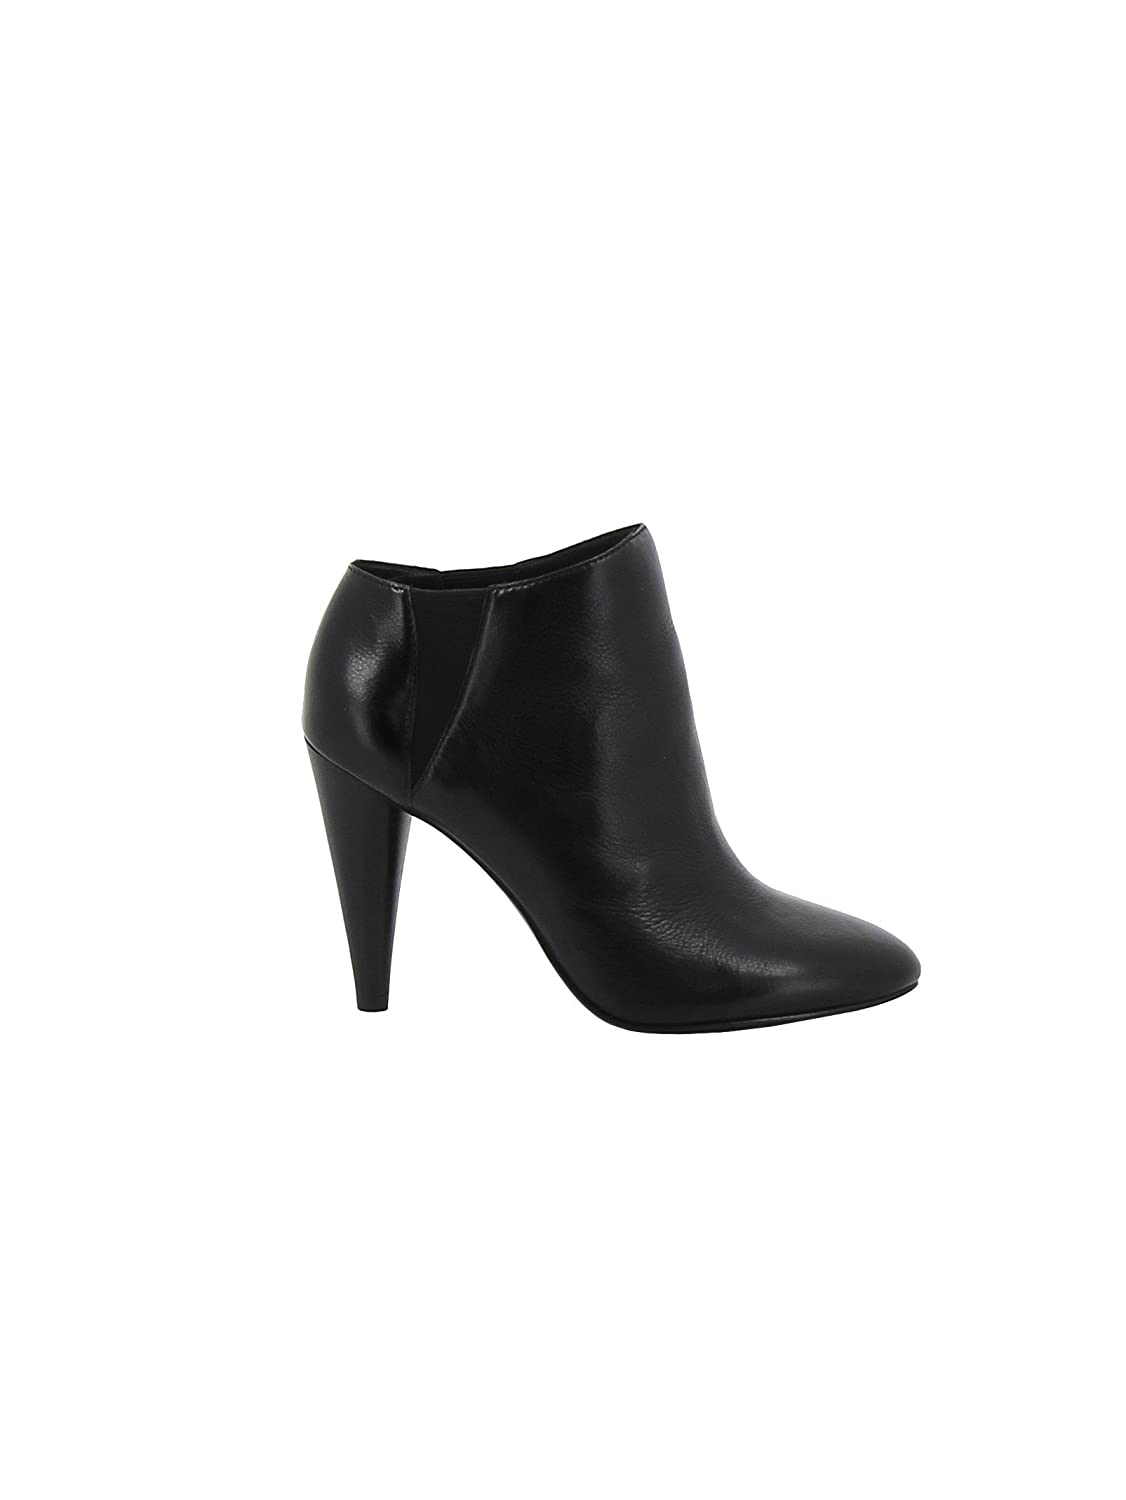 ASH WOMEN'S BEVERLY003 BLACK LEATHER ANKLE BOOTS